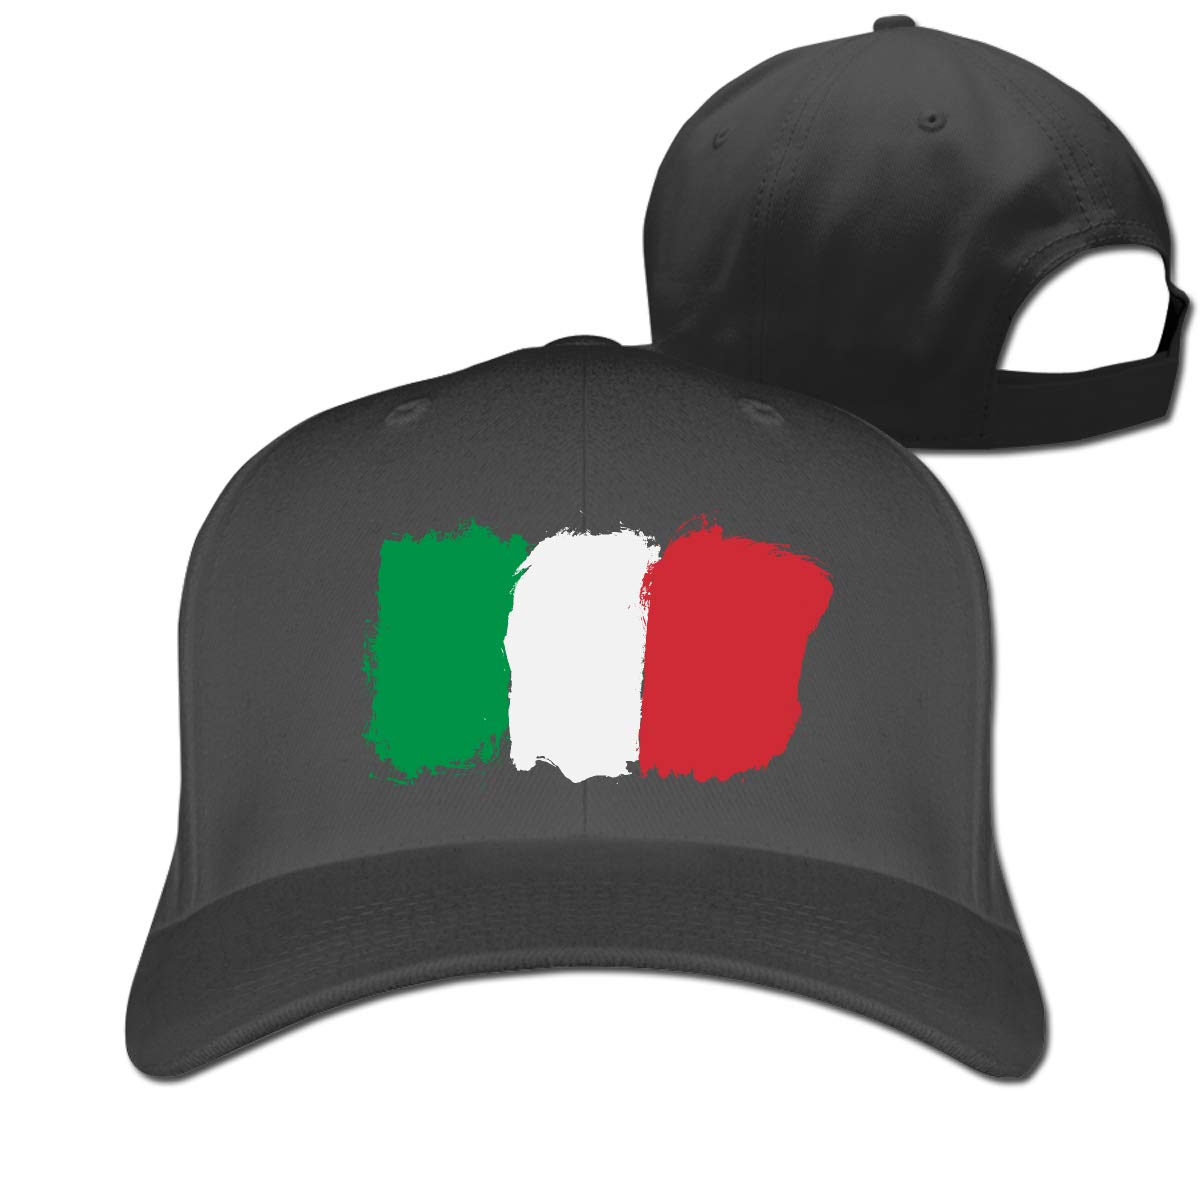 Italian Flag Classic Adjustable Cotton Baseball Caps Trucker Driver Hat Outdoor Cap Fitted Hats Dad Hat Black